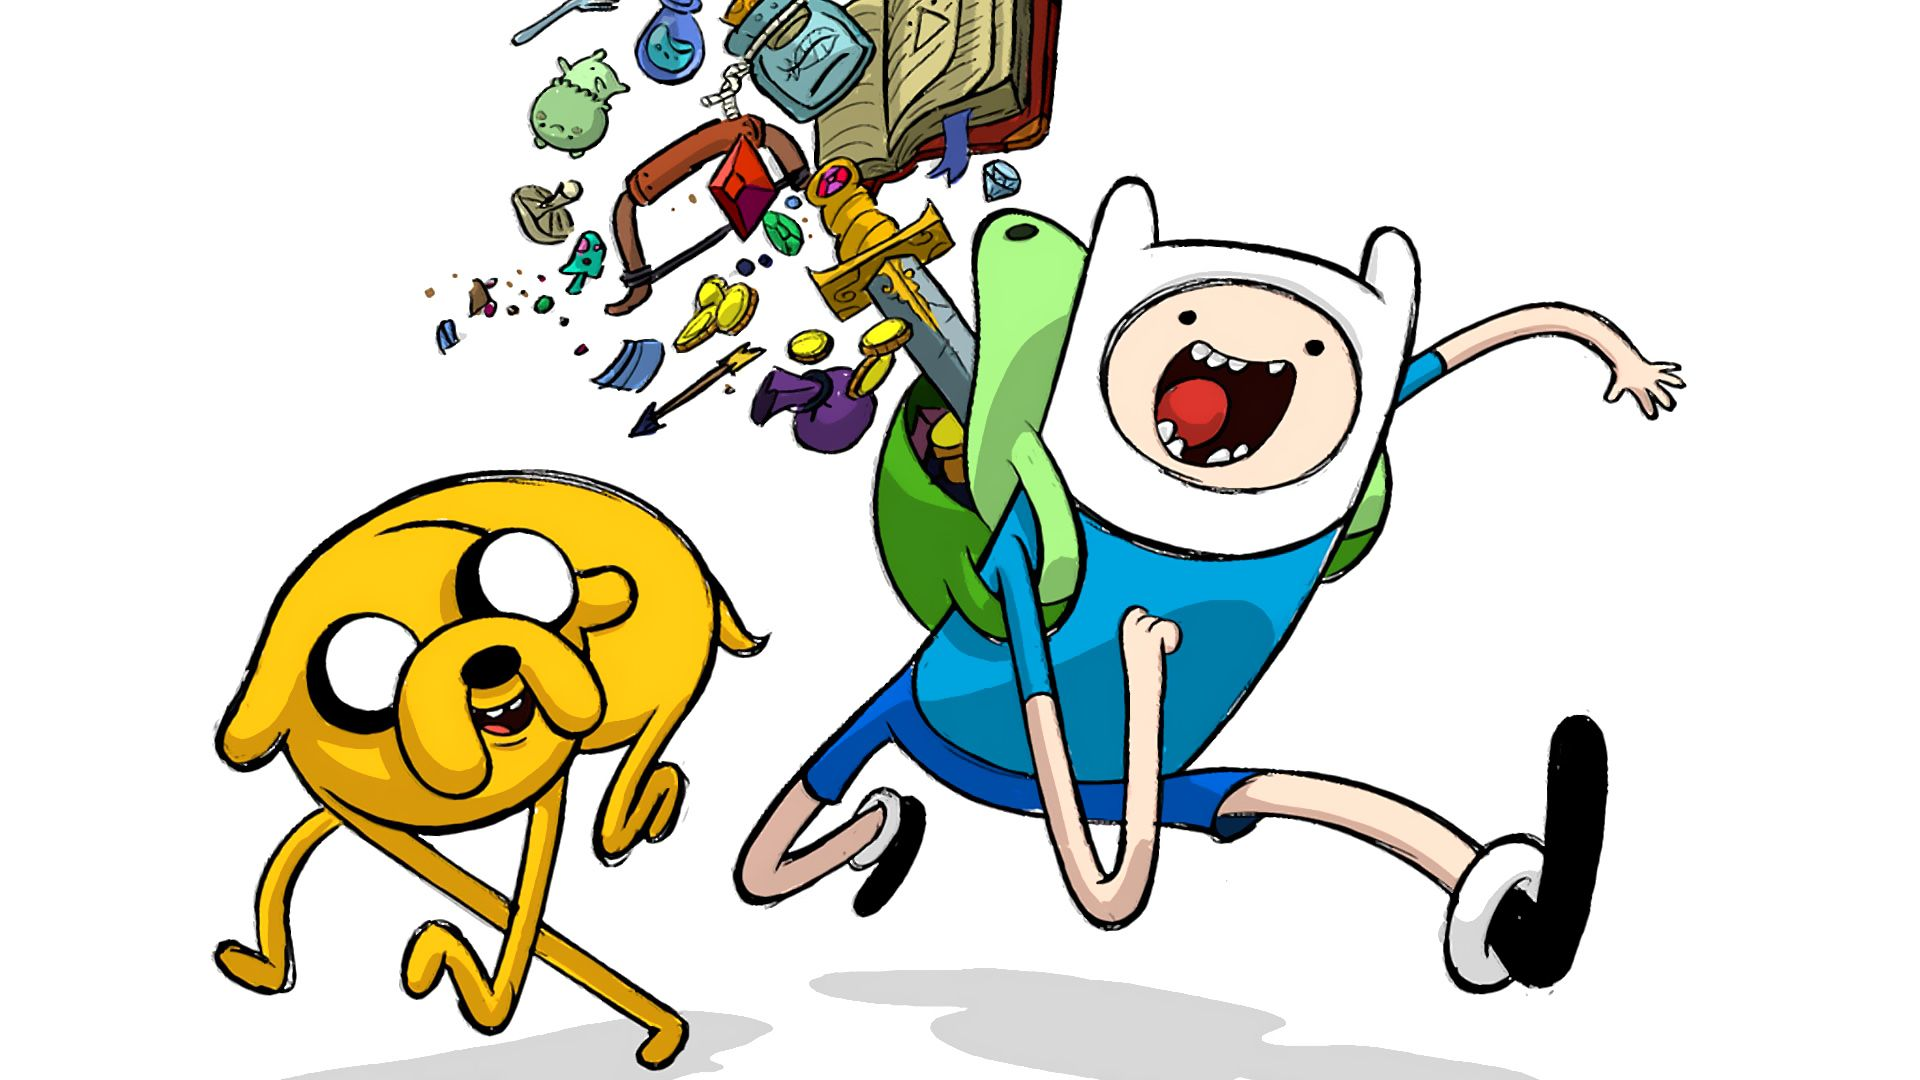 What Time Is It Adventure Time Wallpaper Adventure Time Finn